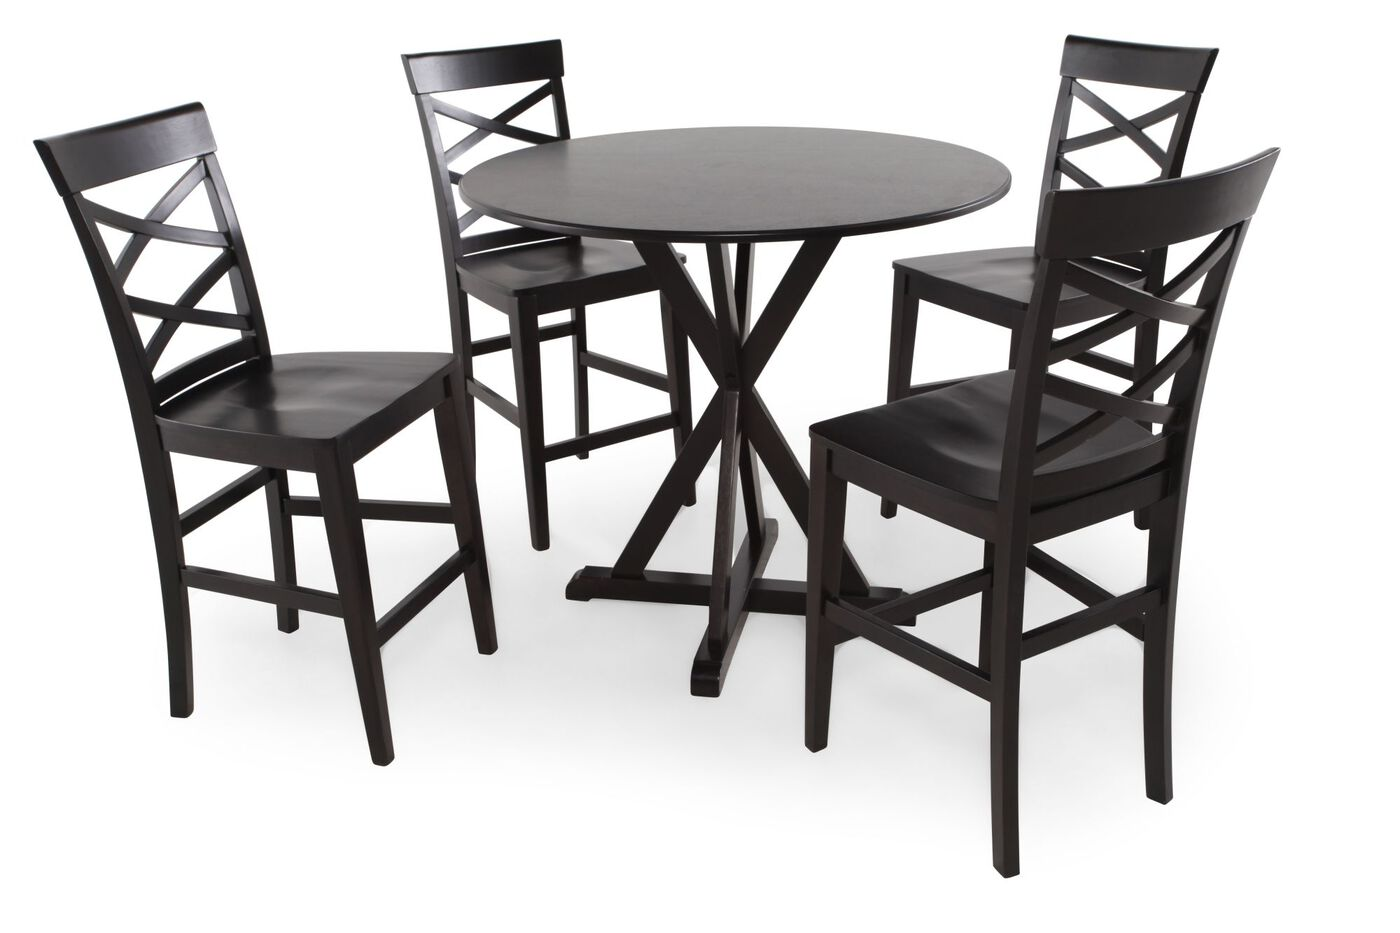 100 Ashley Pub Table Set Signature Design By Ashley  : ASH D3815E047PUB 1 from 45.77.108.62 size 1400 x 933 jpeg 88kB